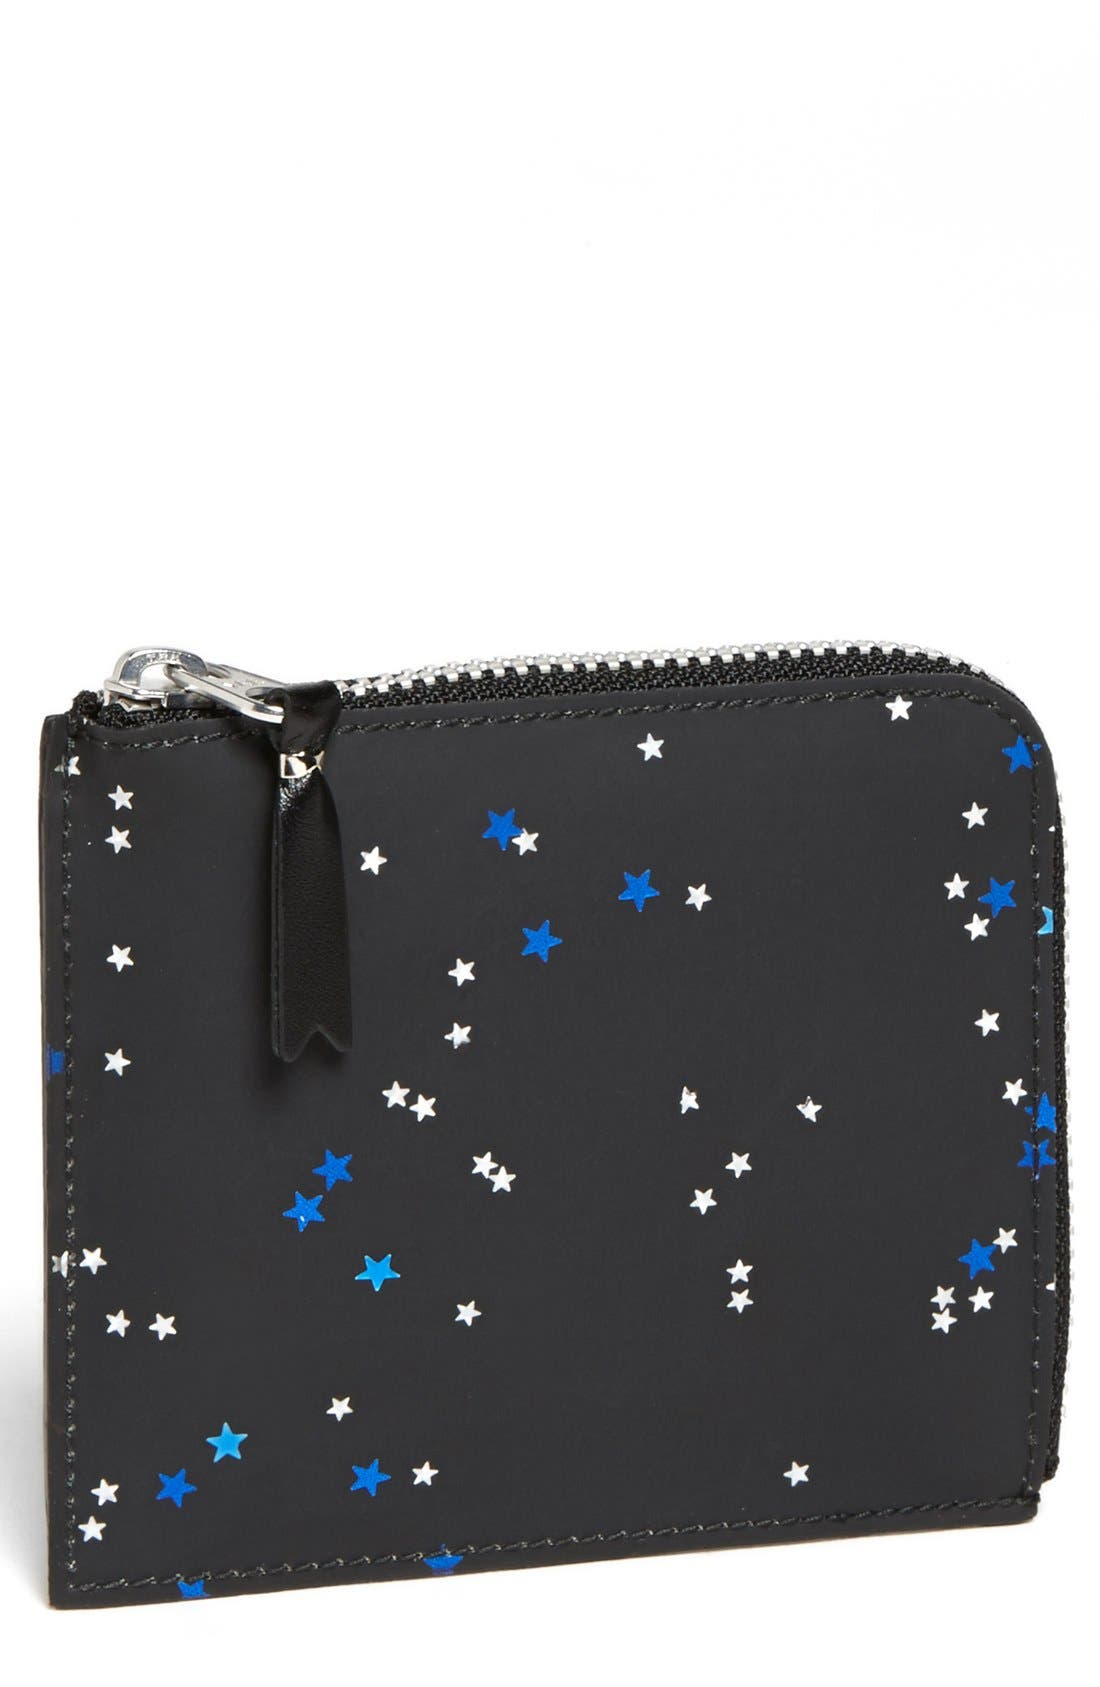 Alternate Image 1 Selected - Comme des Garçons 'Bright Star - Small' French Wallet